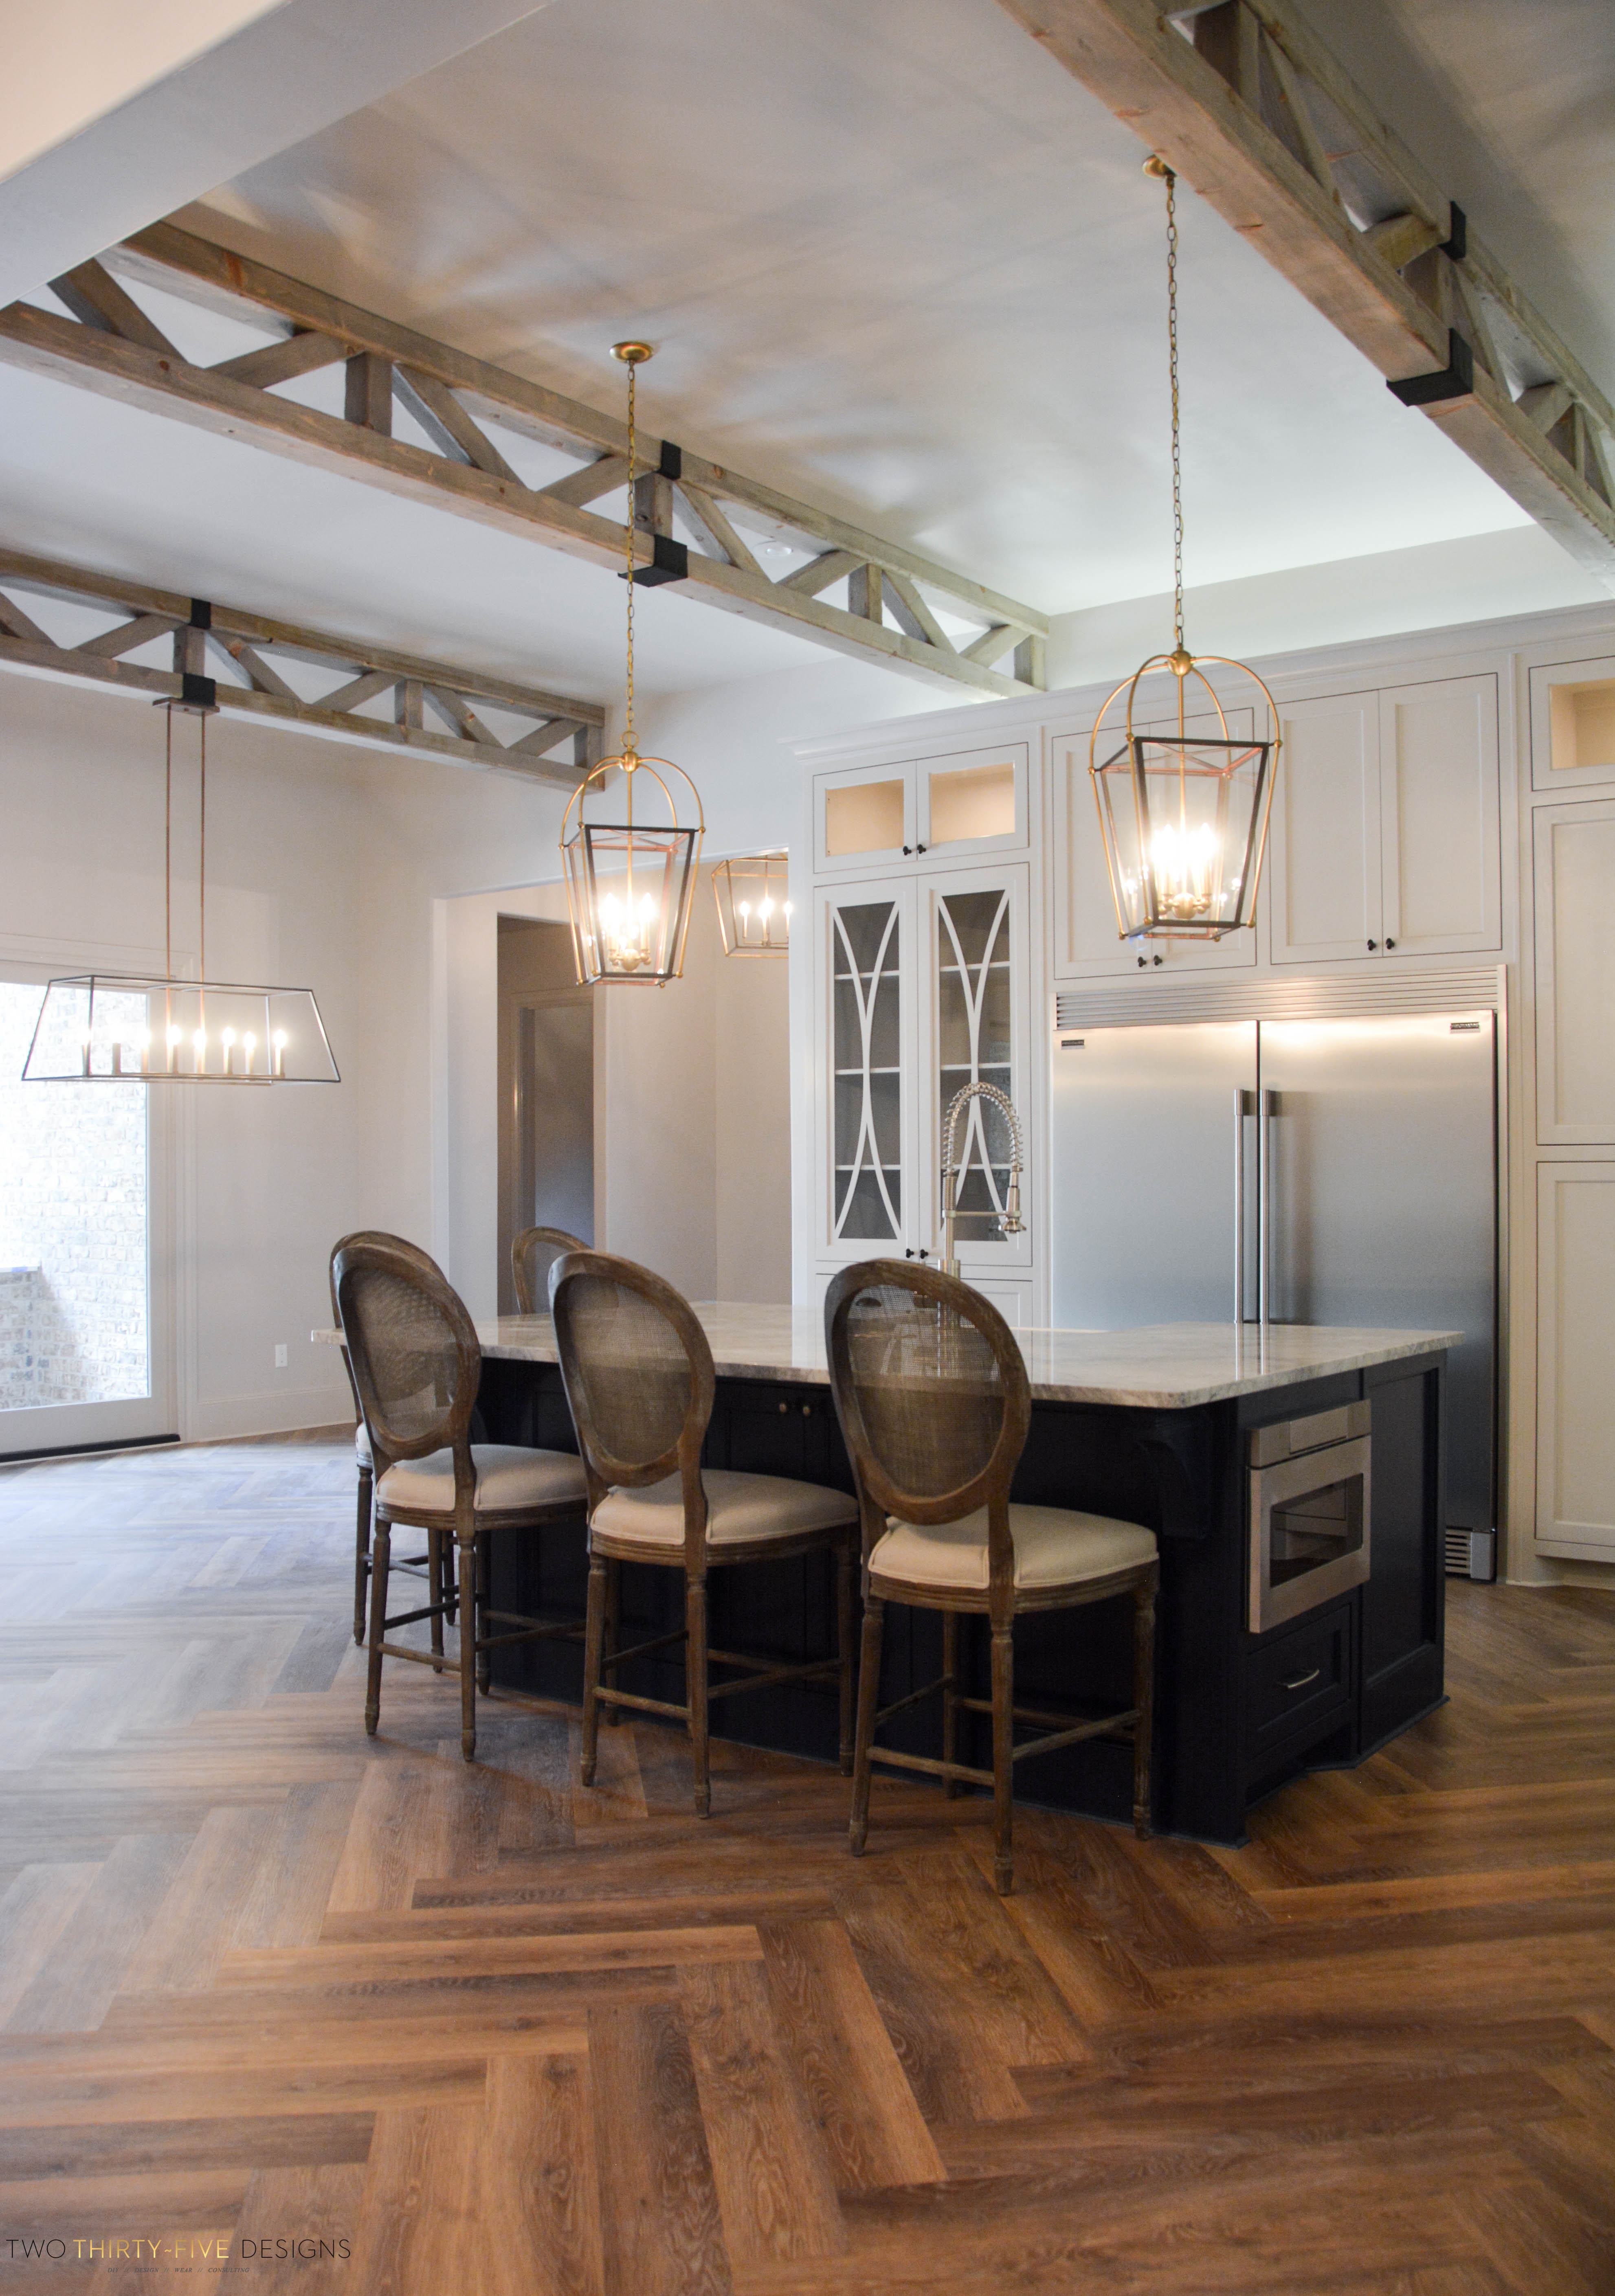 ... Rustic French Kitchen By Two Thirty Five Designs 2